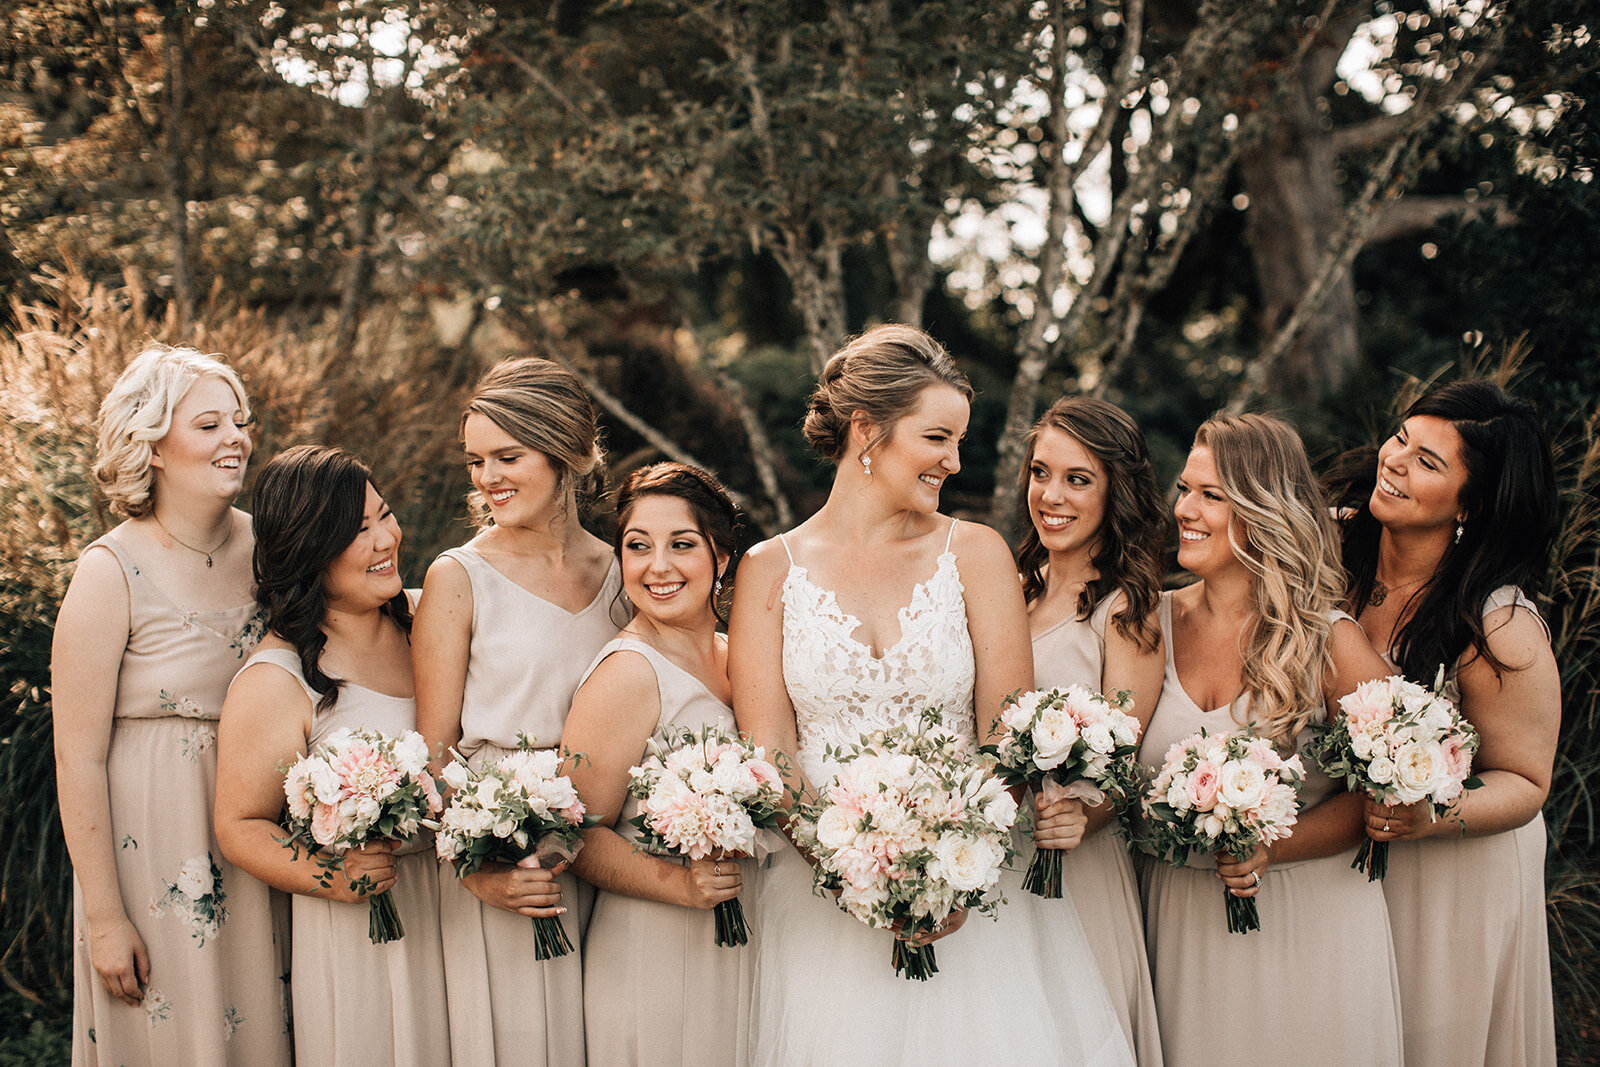 Bridalbliss.com   Bend Wedding   Oregon Event Planning and Design   Bethany Small Photography